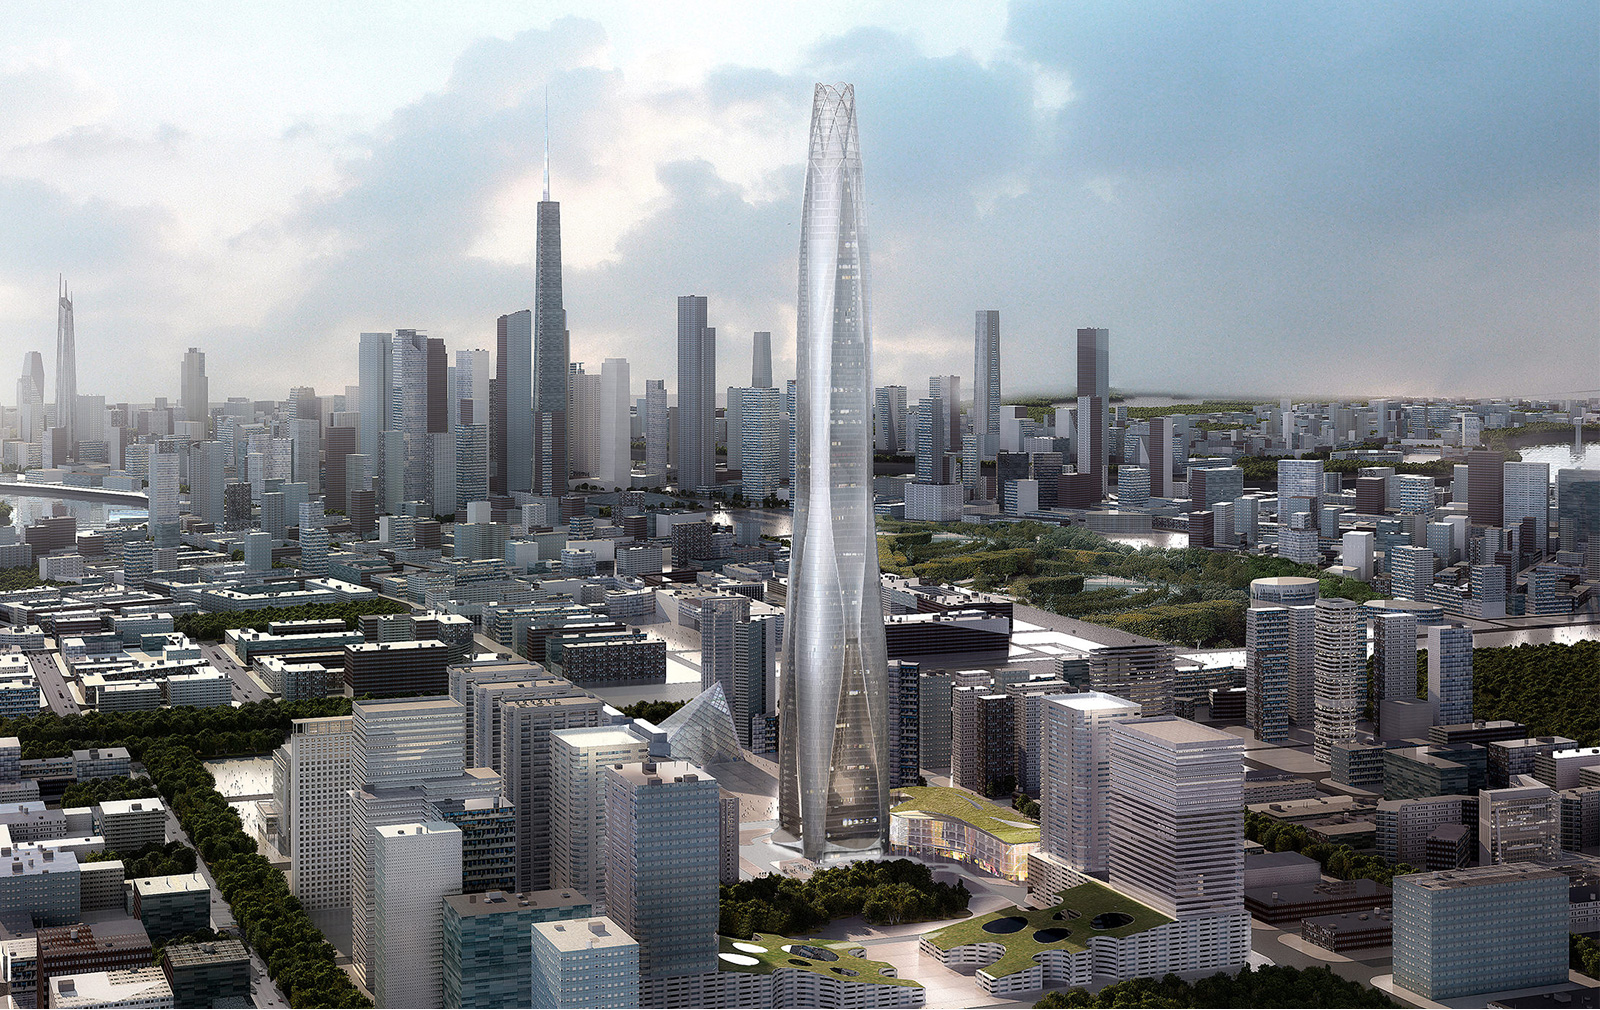 Future Tallest Building In The World Under Construction 10 tallest buildings topping out in 2017